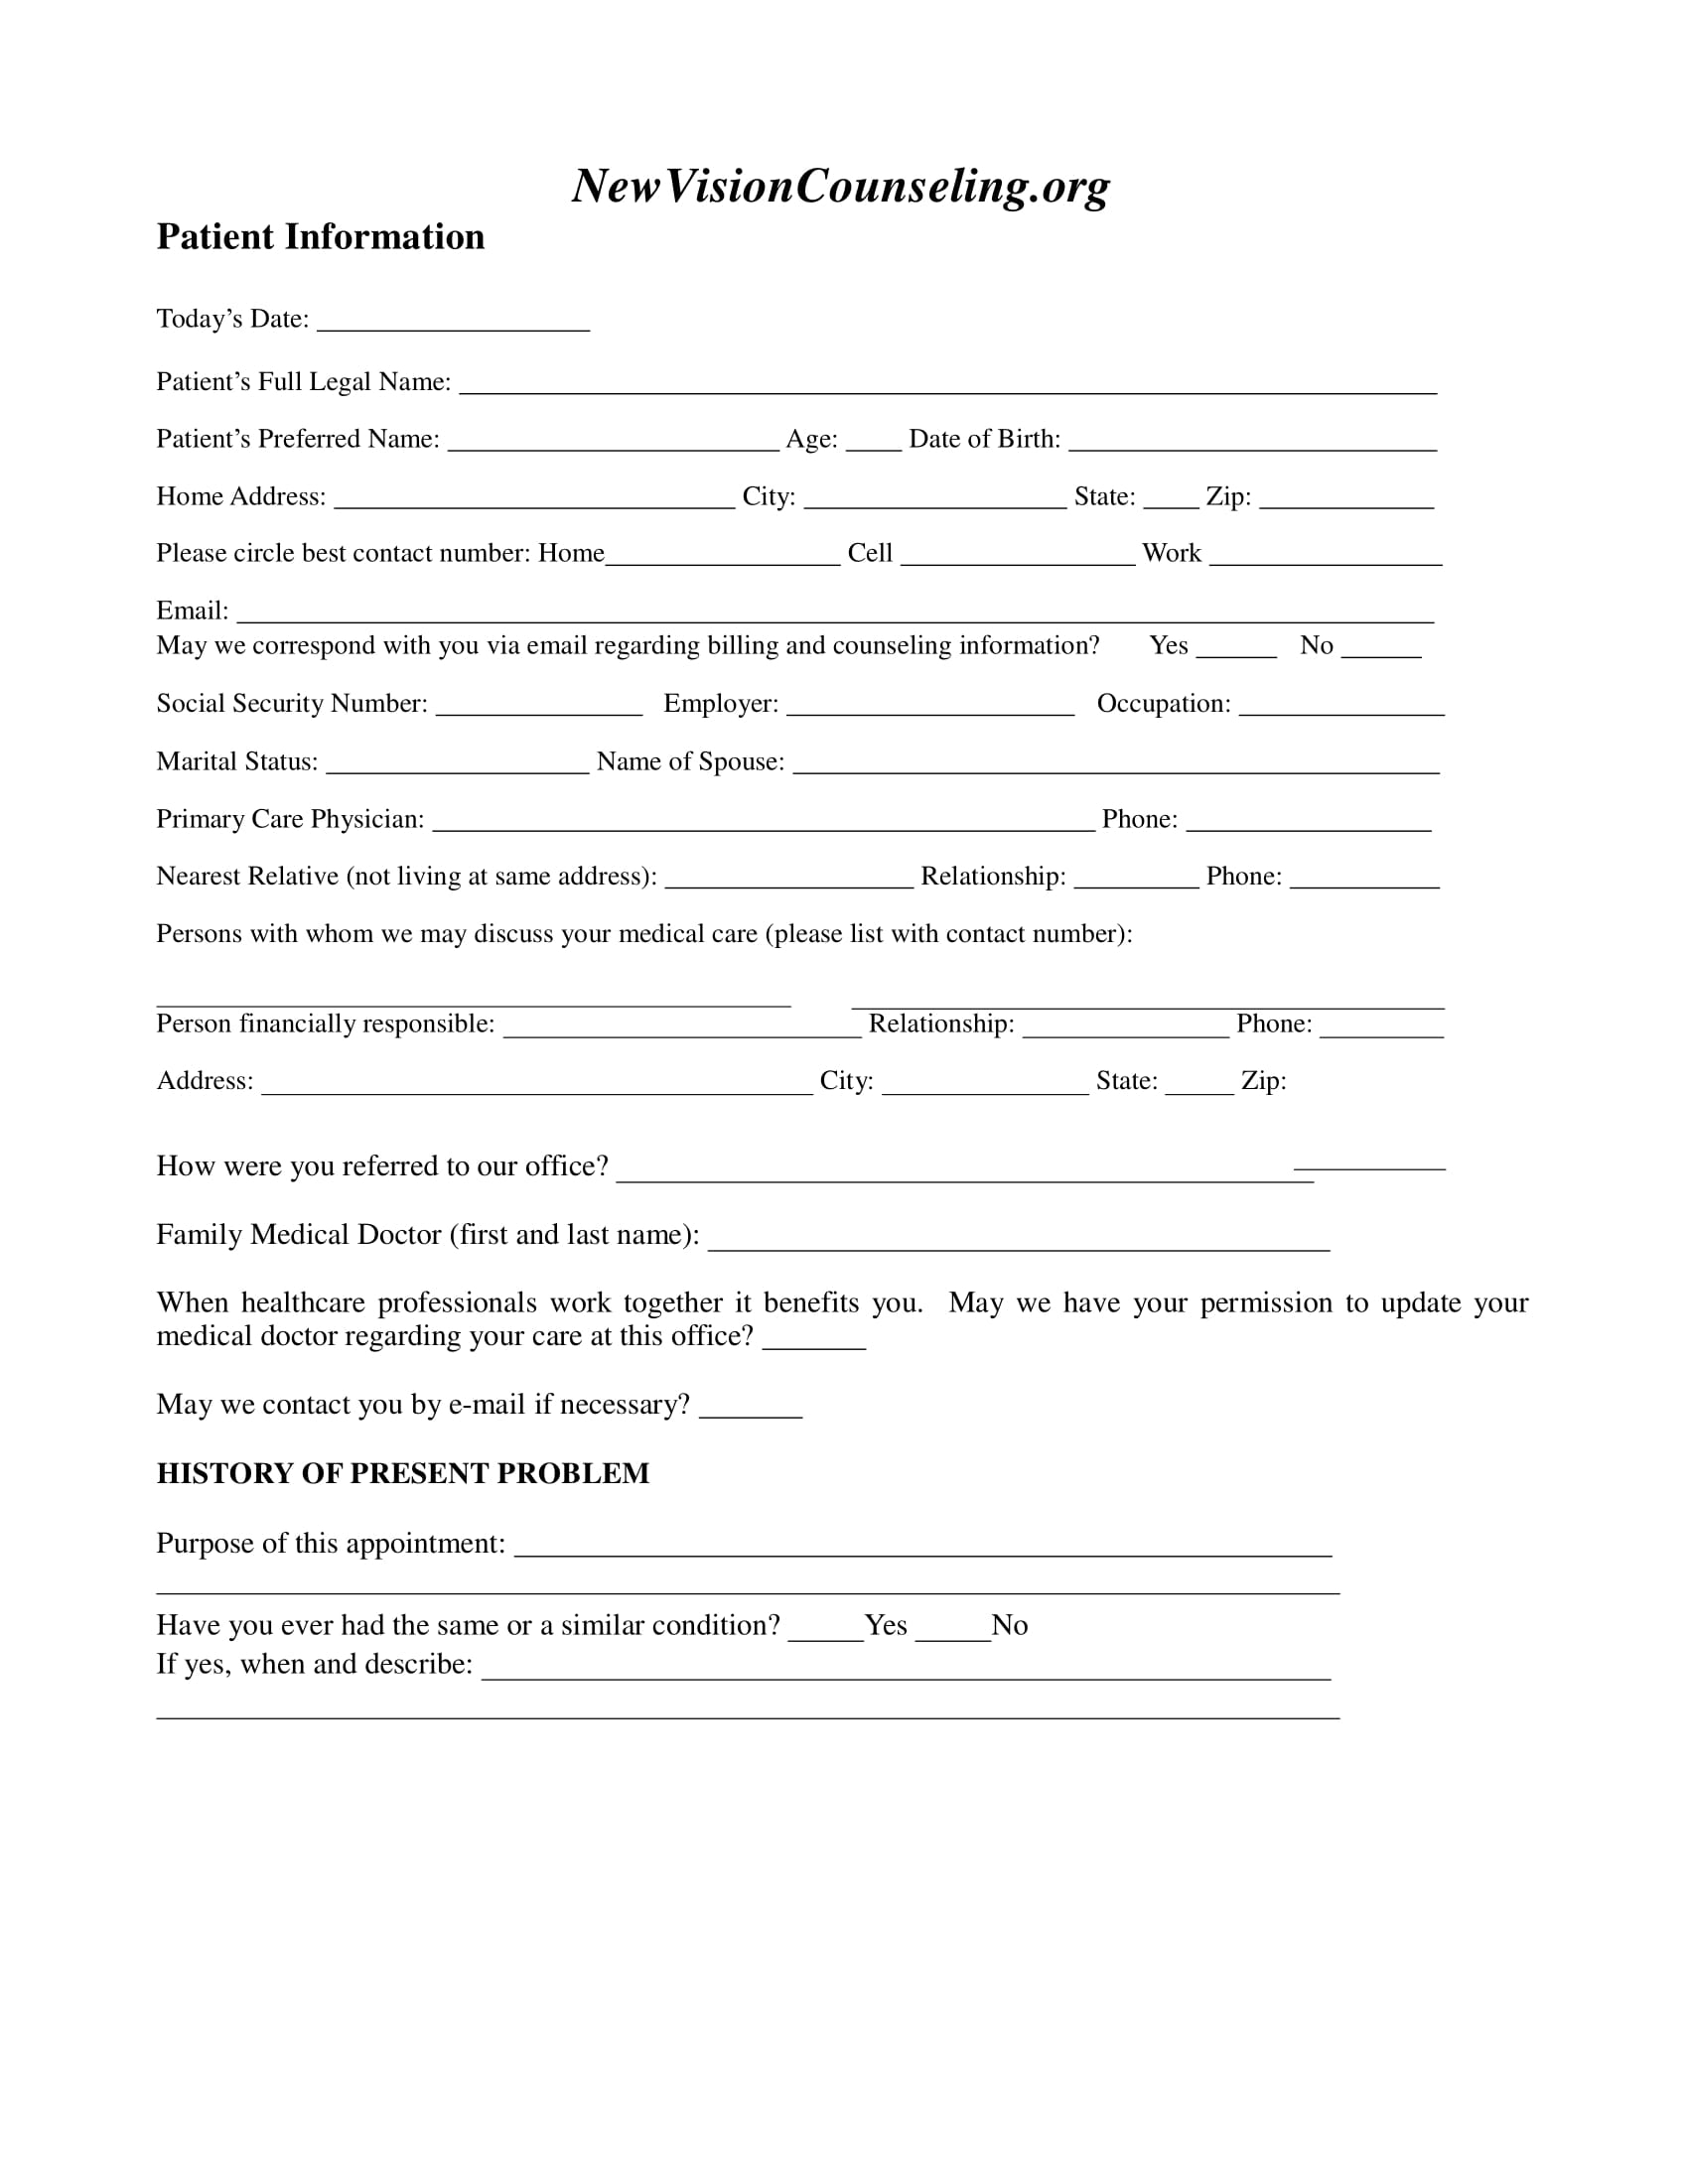 psychotherapy counseling intake form 03